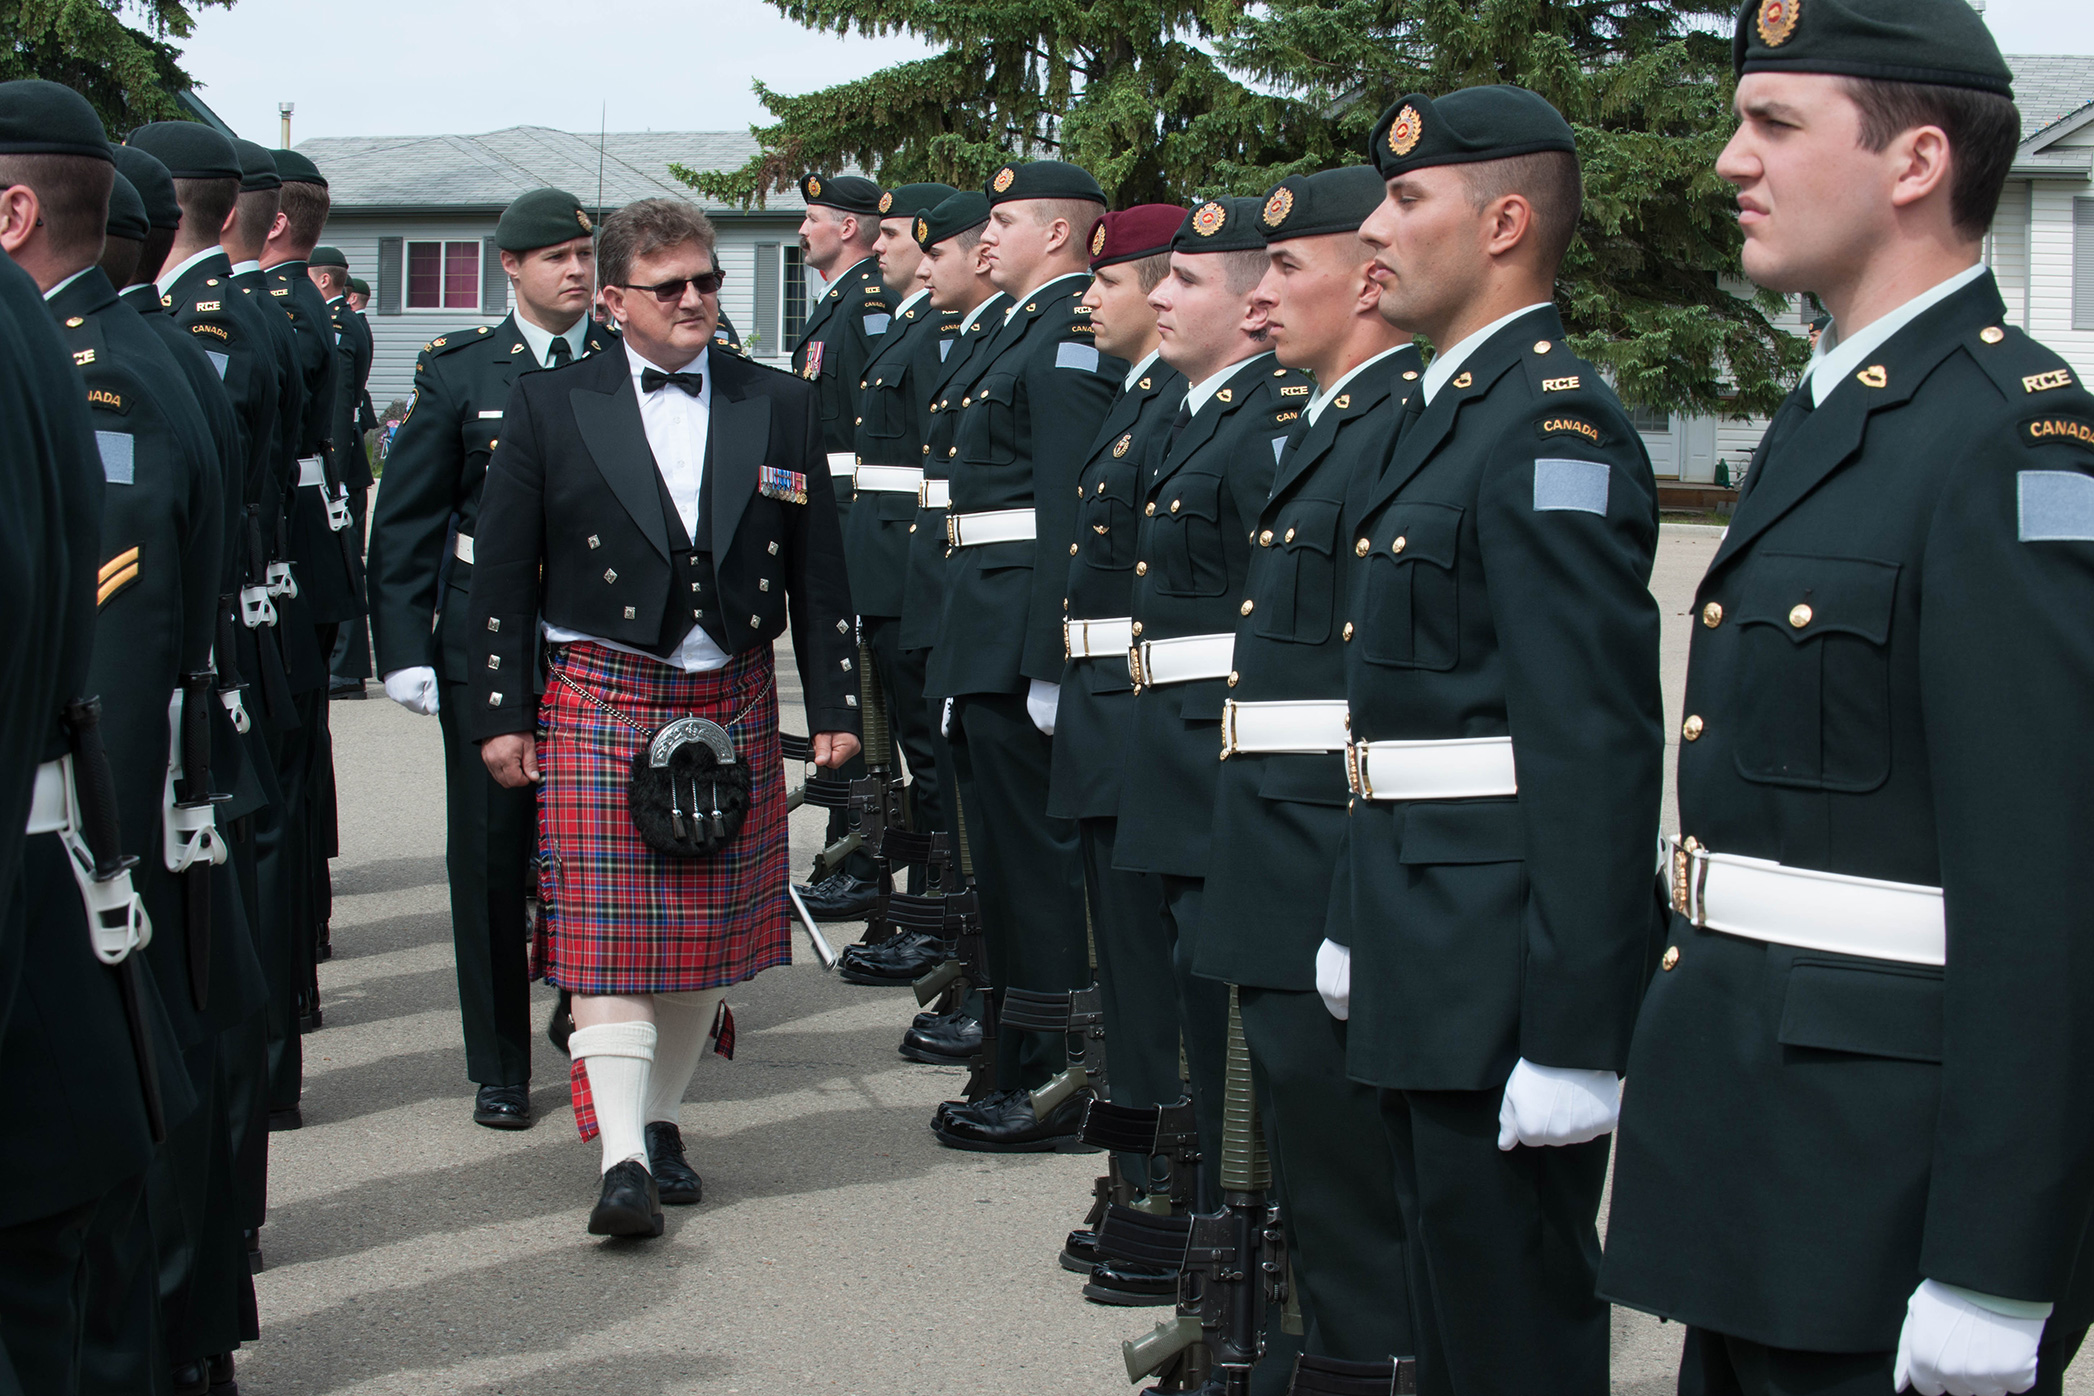 Le maire Randy Boyd inspecte les soldats lors des cérémonies de Freedom of the City